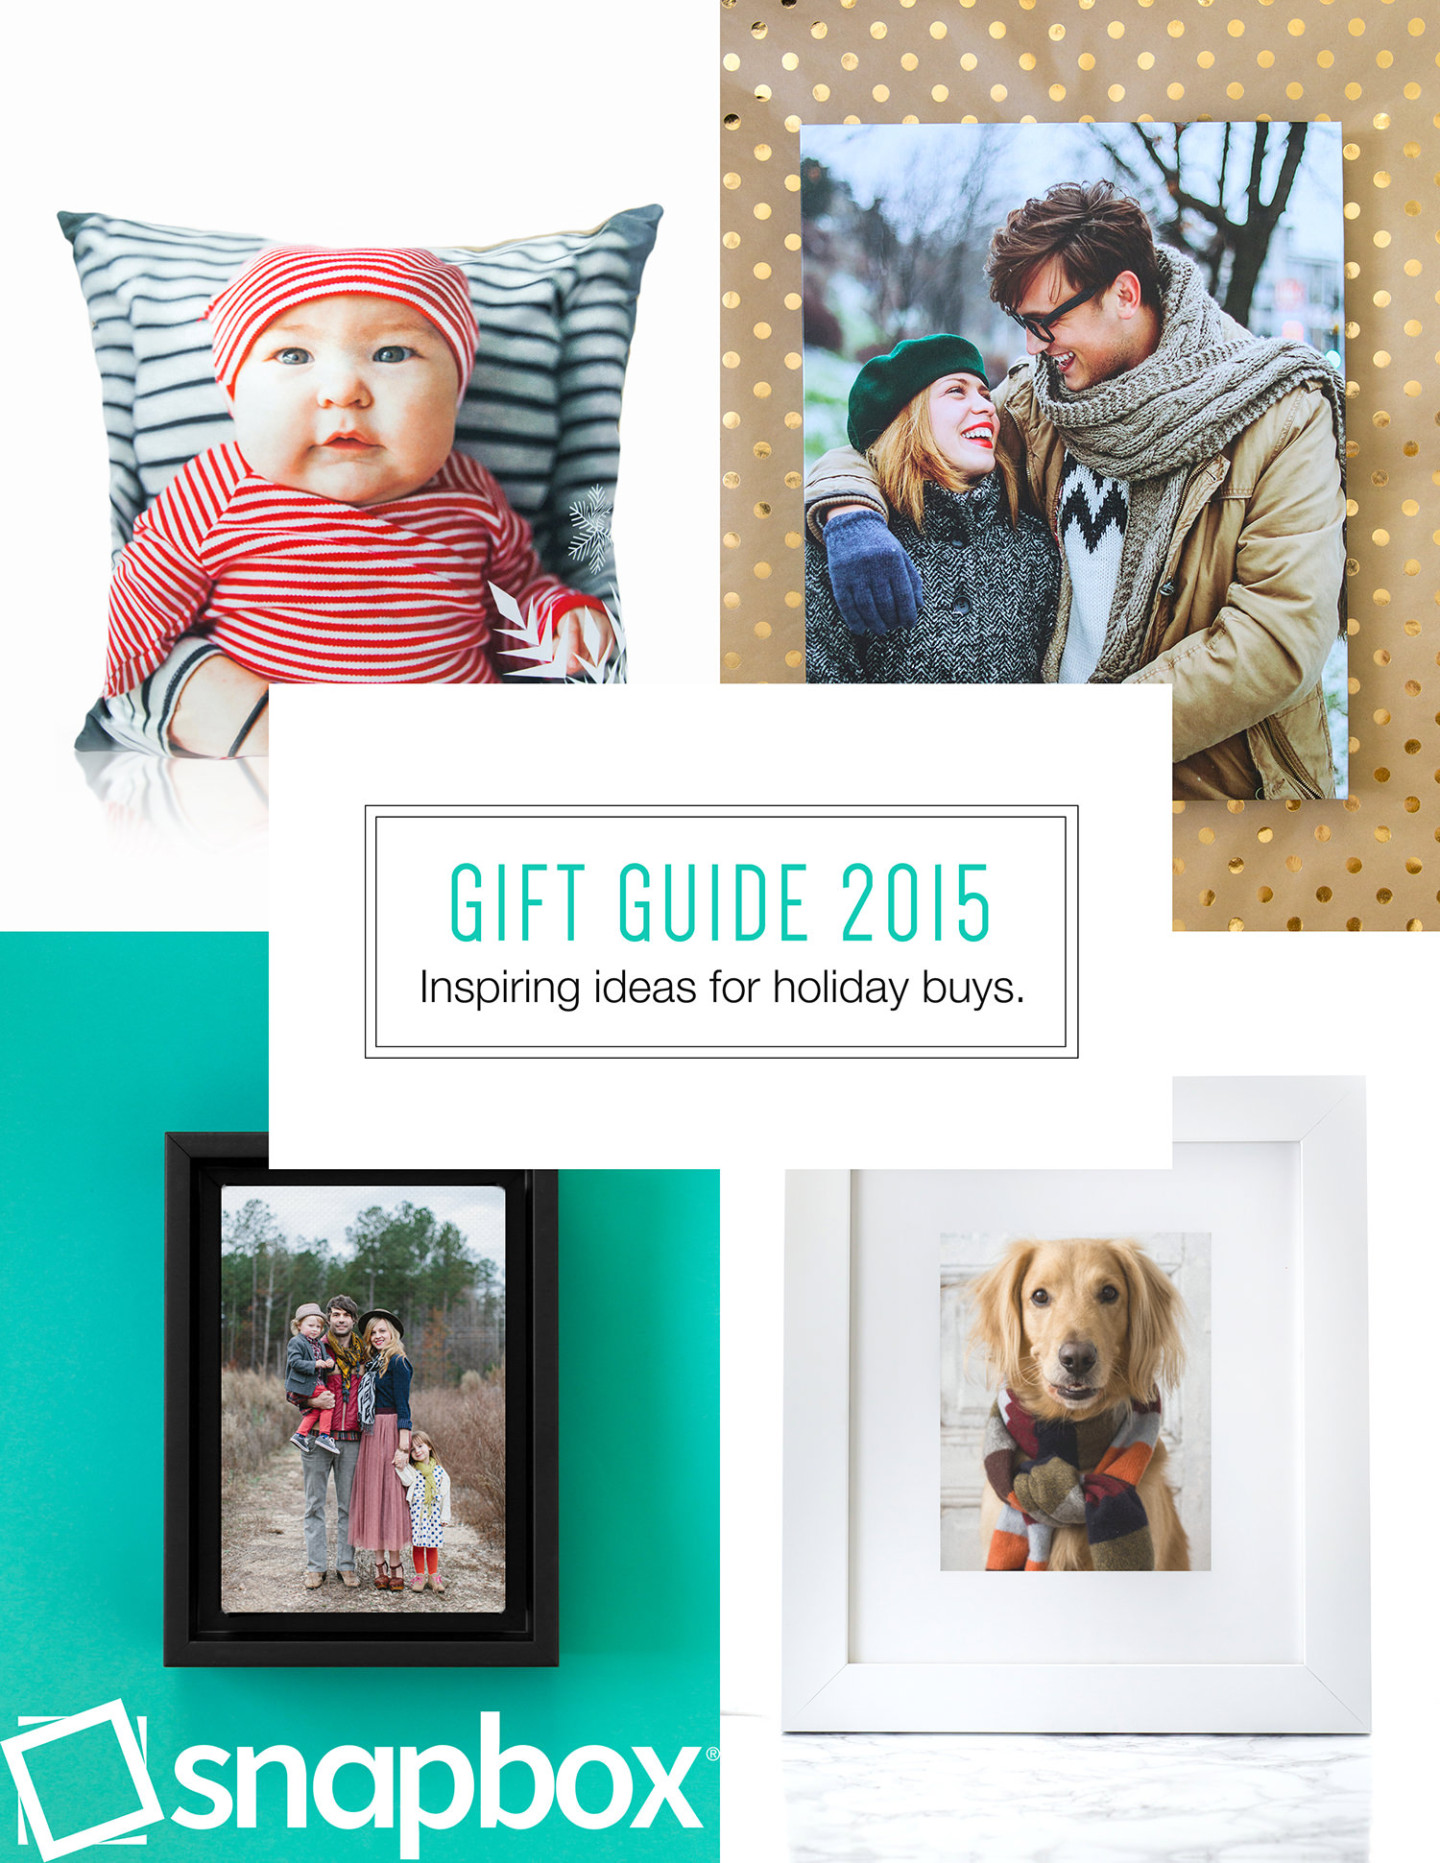 SnapBox Holiday Gift Guide 2015